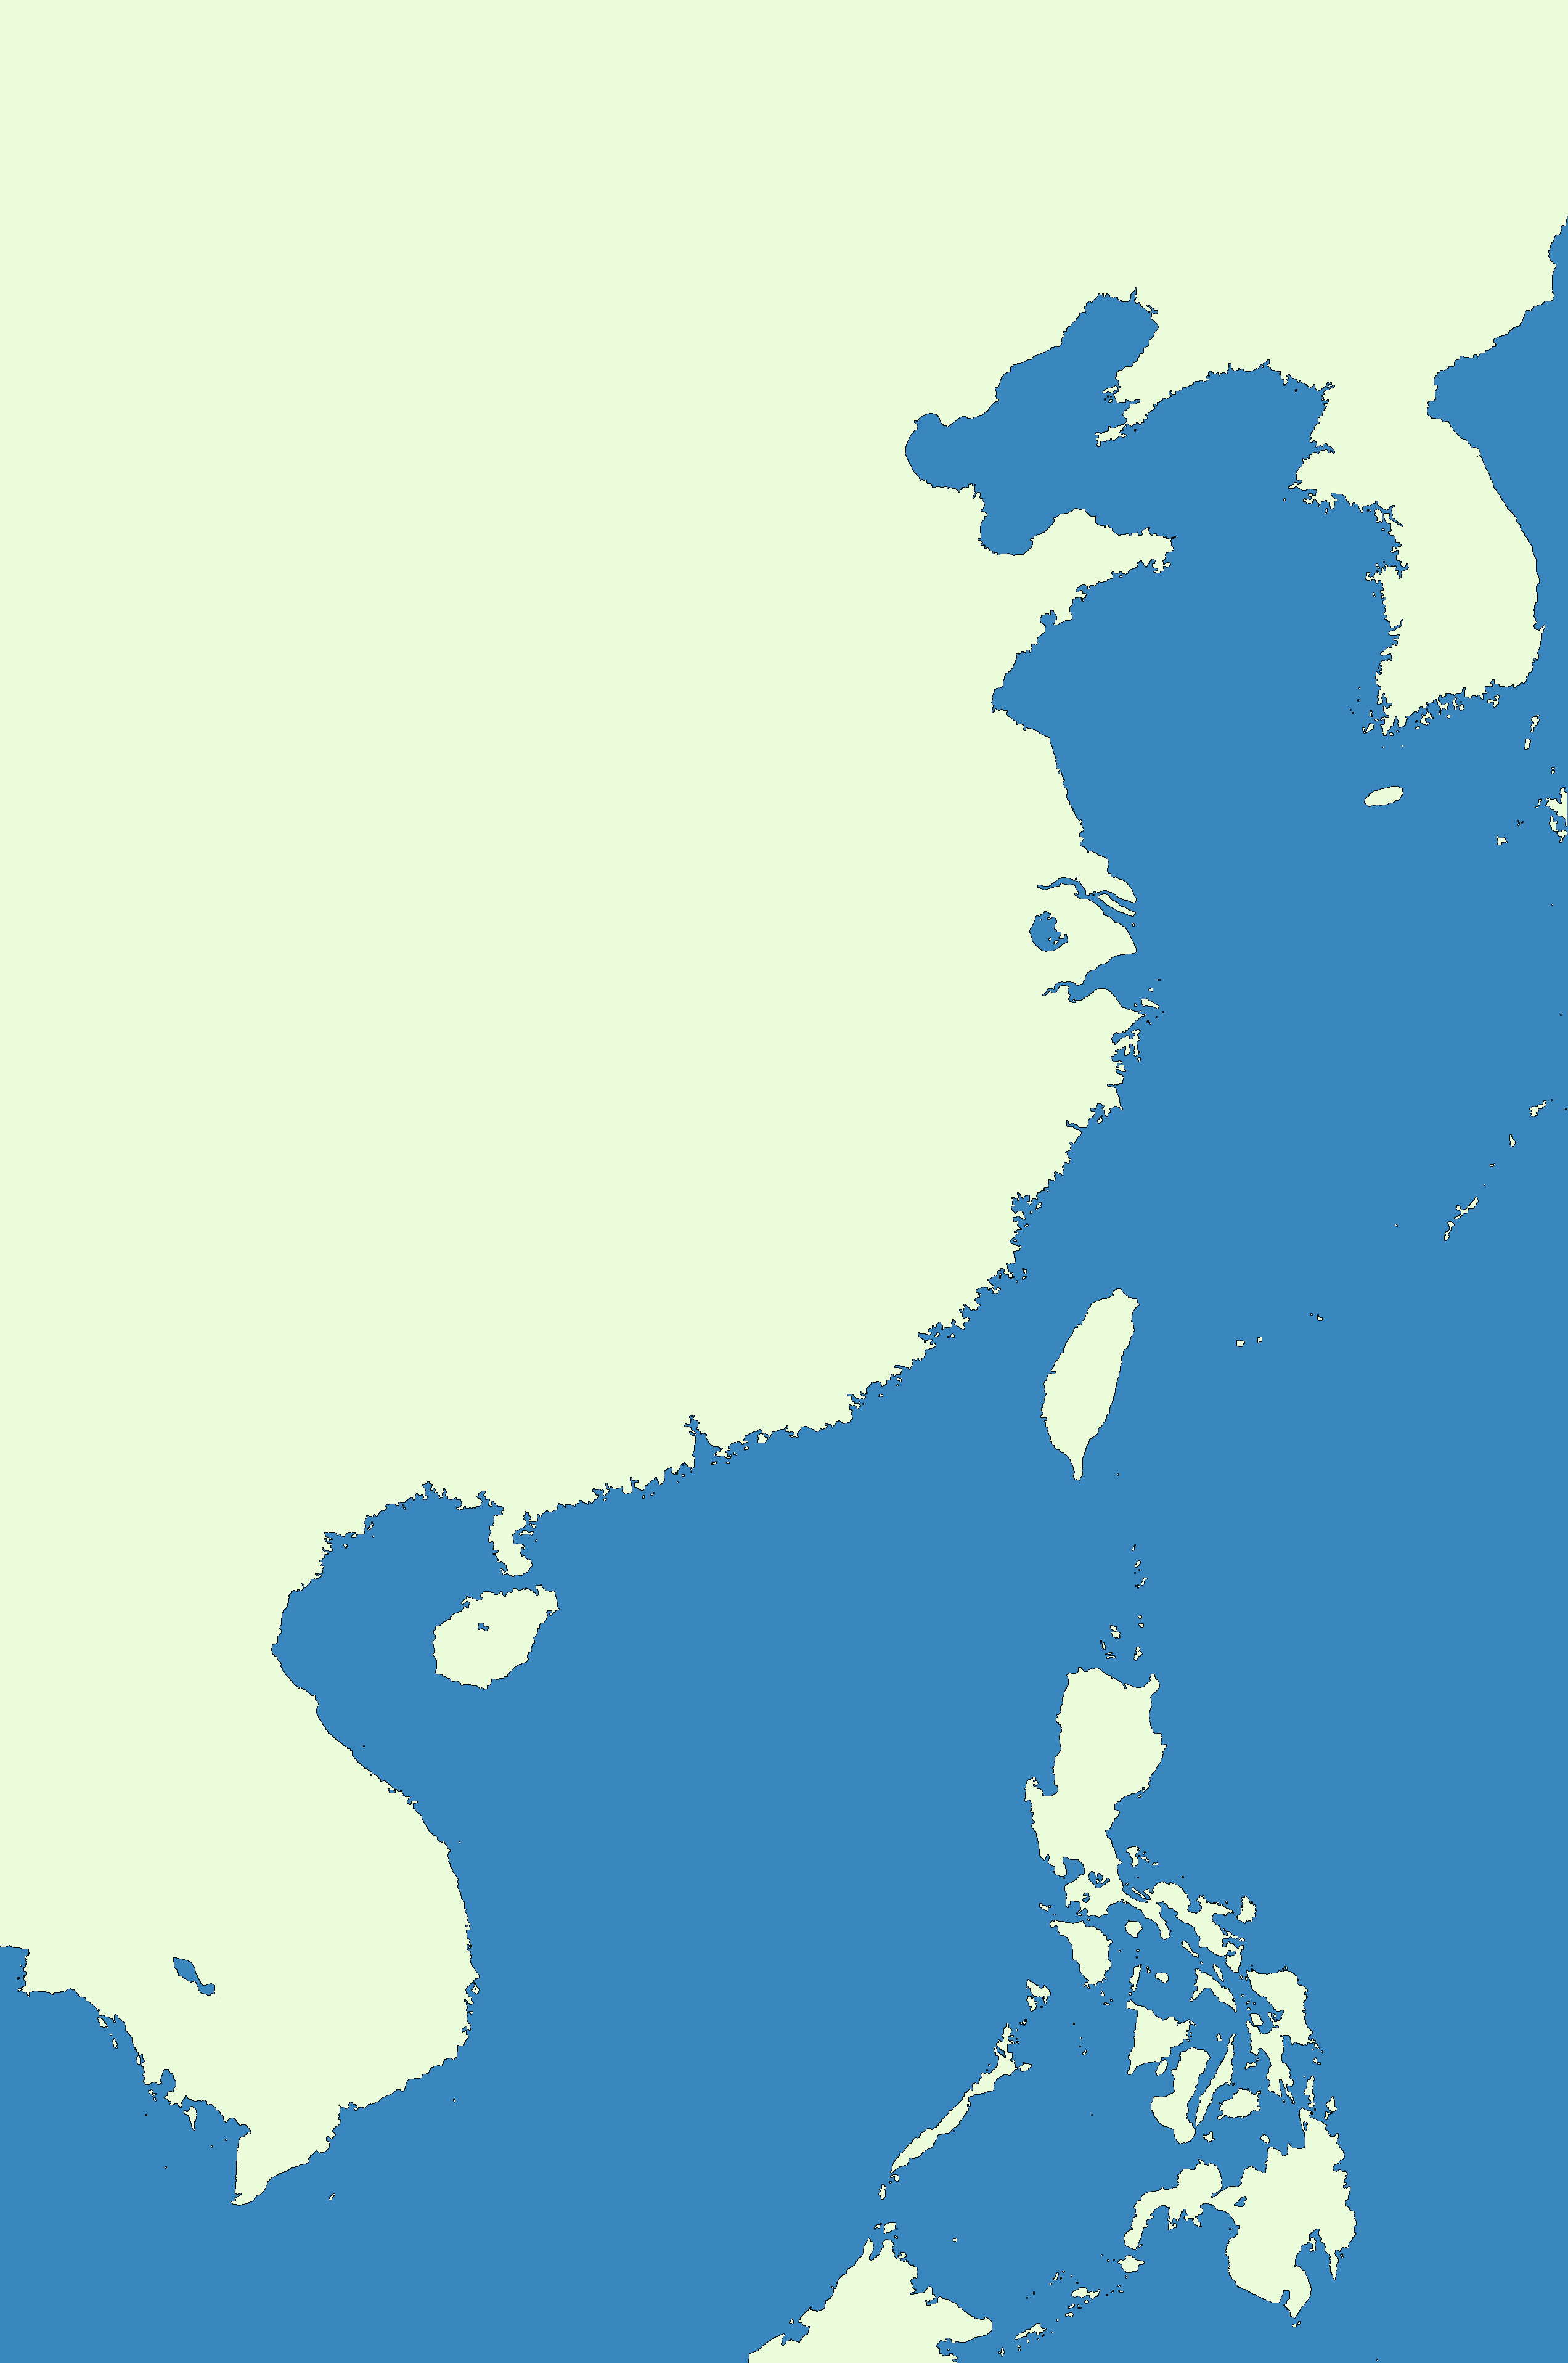 Chinese Core_Korea_and Southeast Asia.png